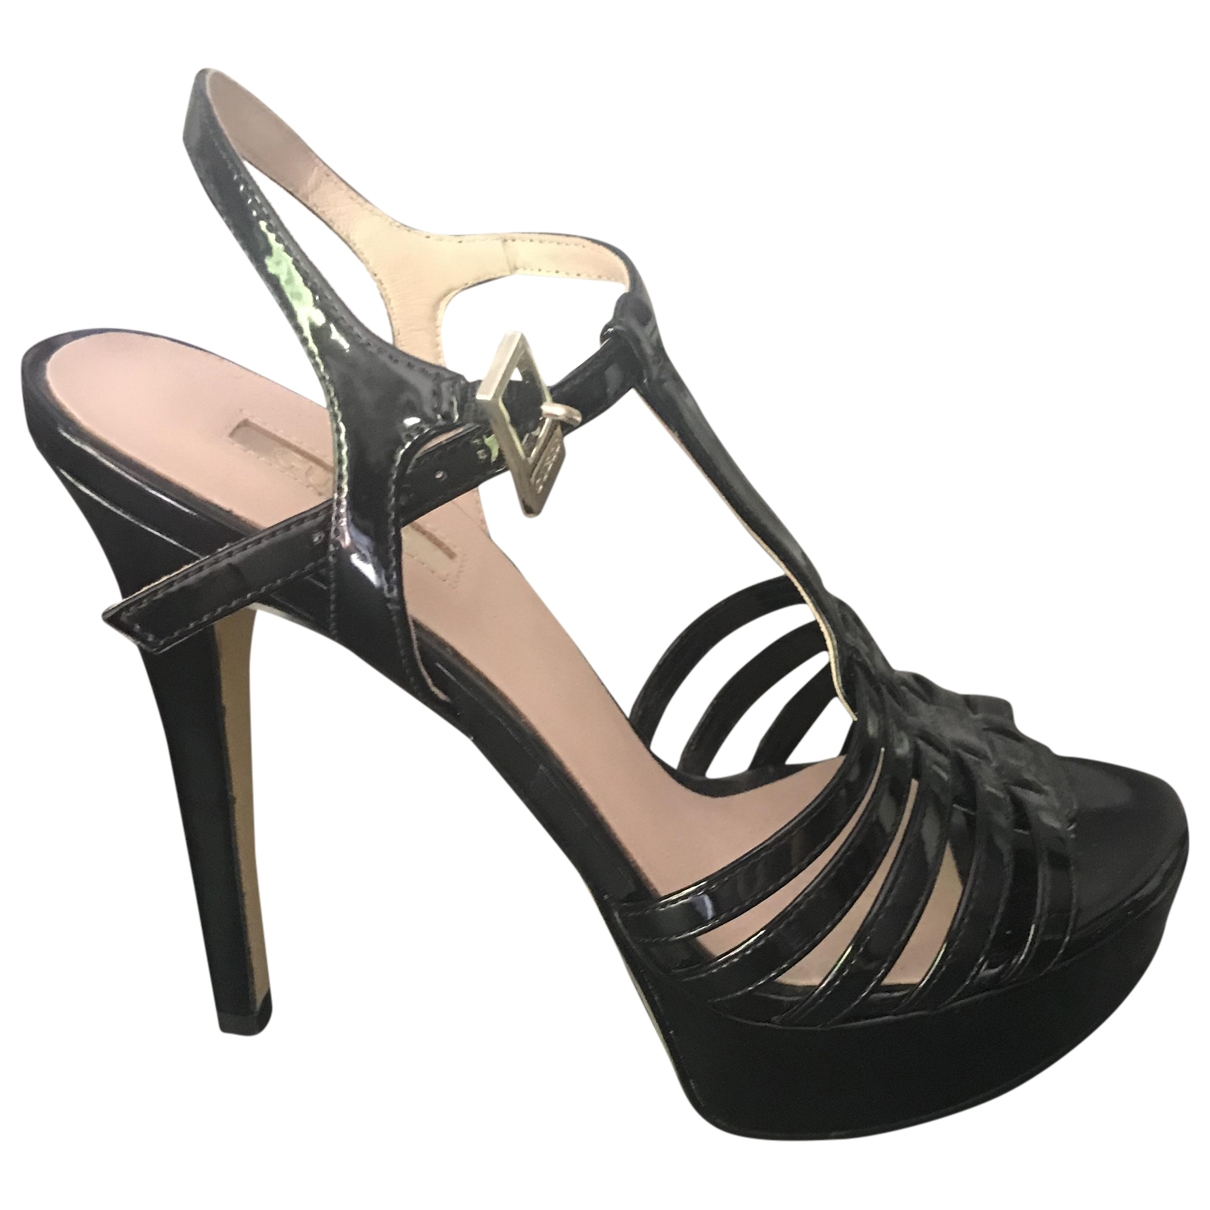 Guess \N Black Patent leather Sandals for Women 37 IT